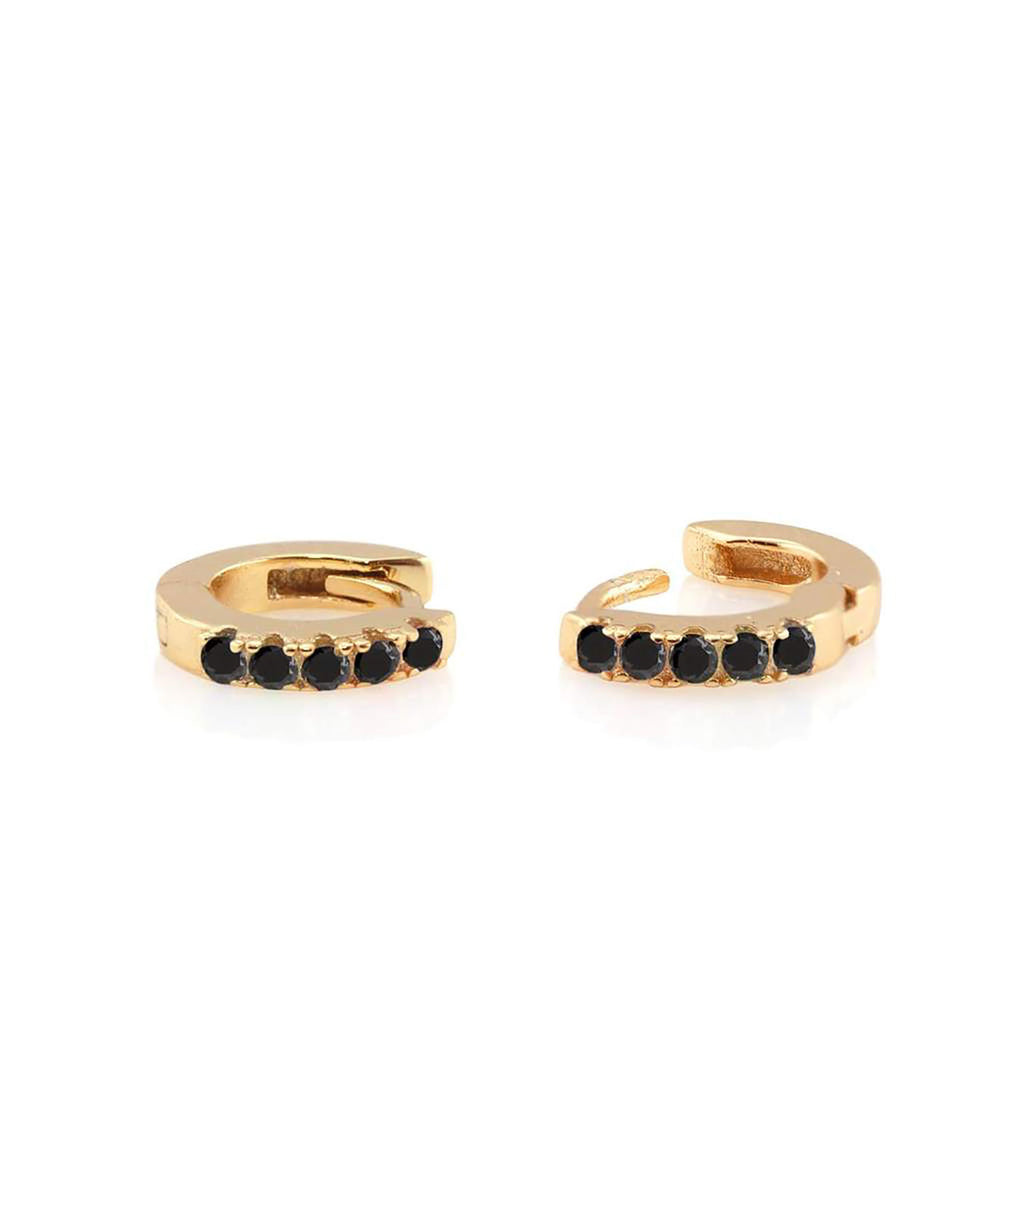 Kris Nations Gold Pave Black Huggie Earrings